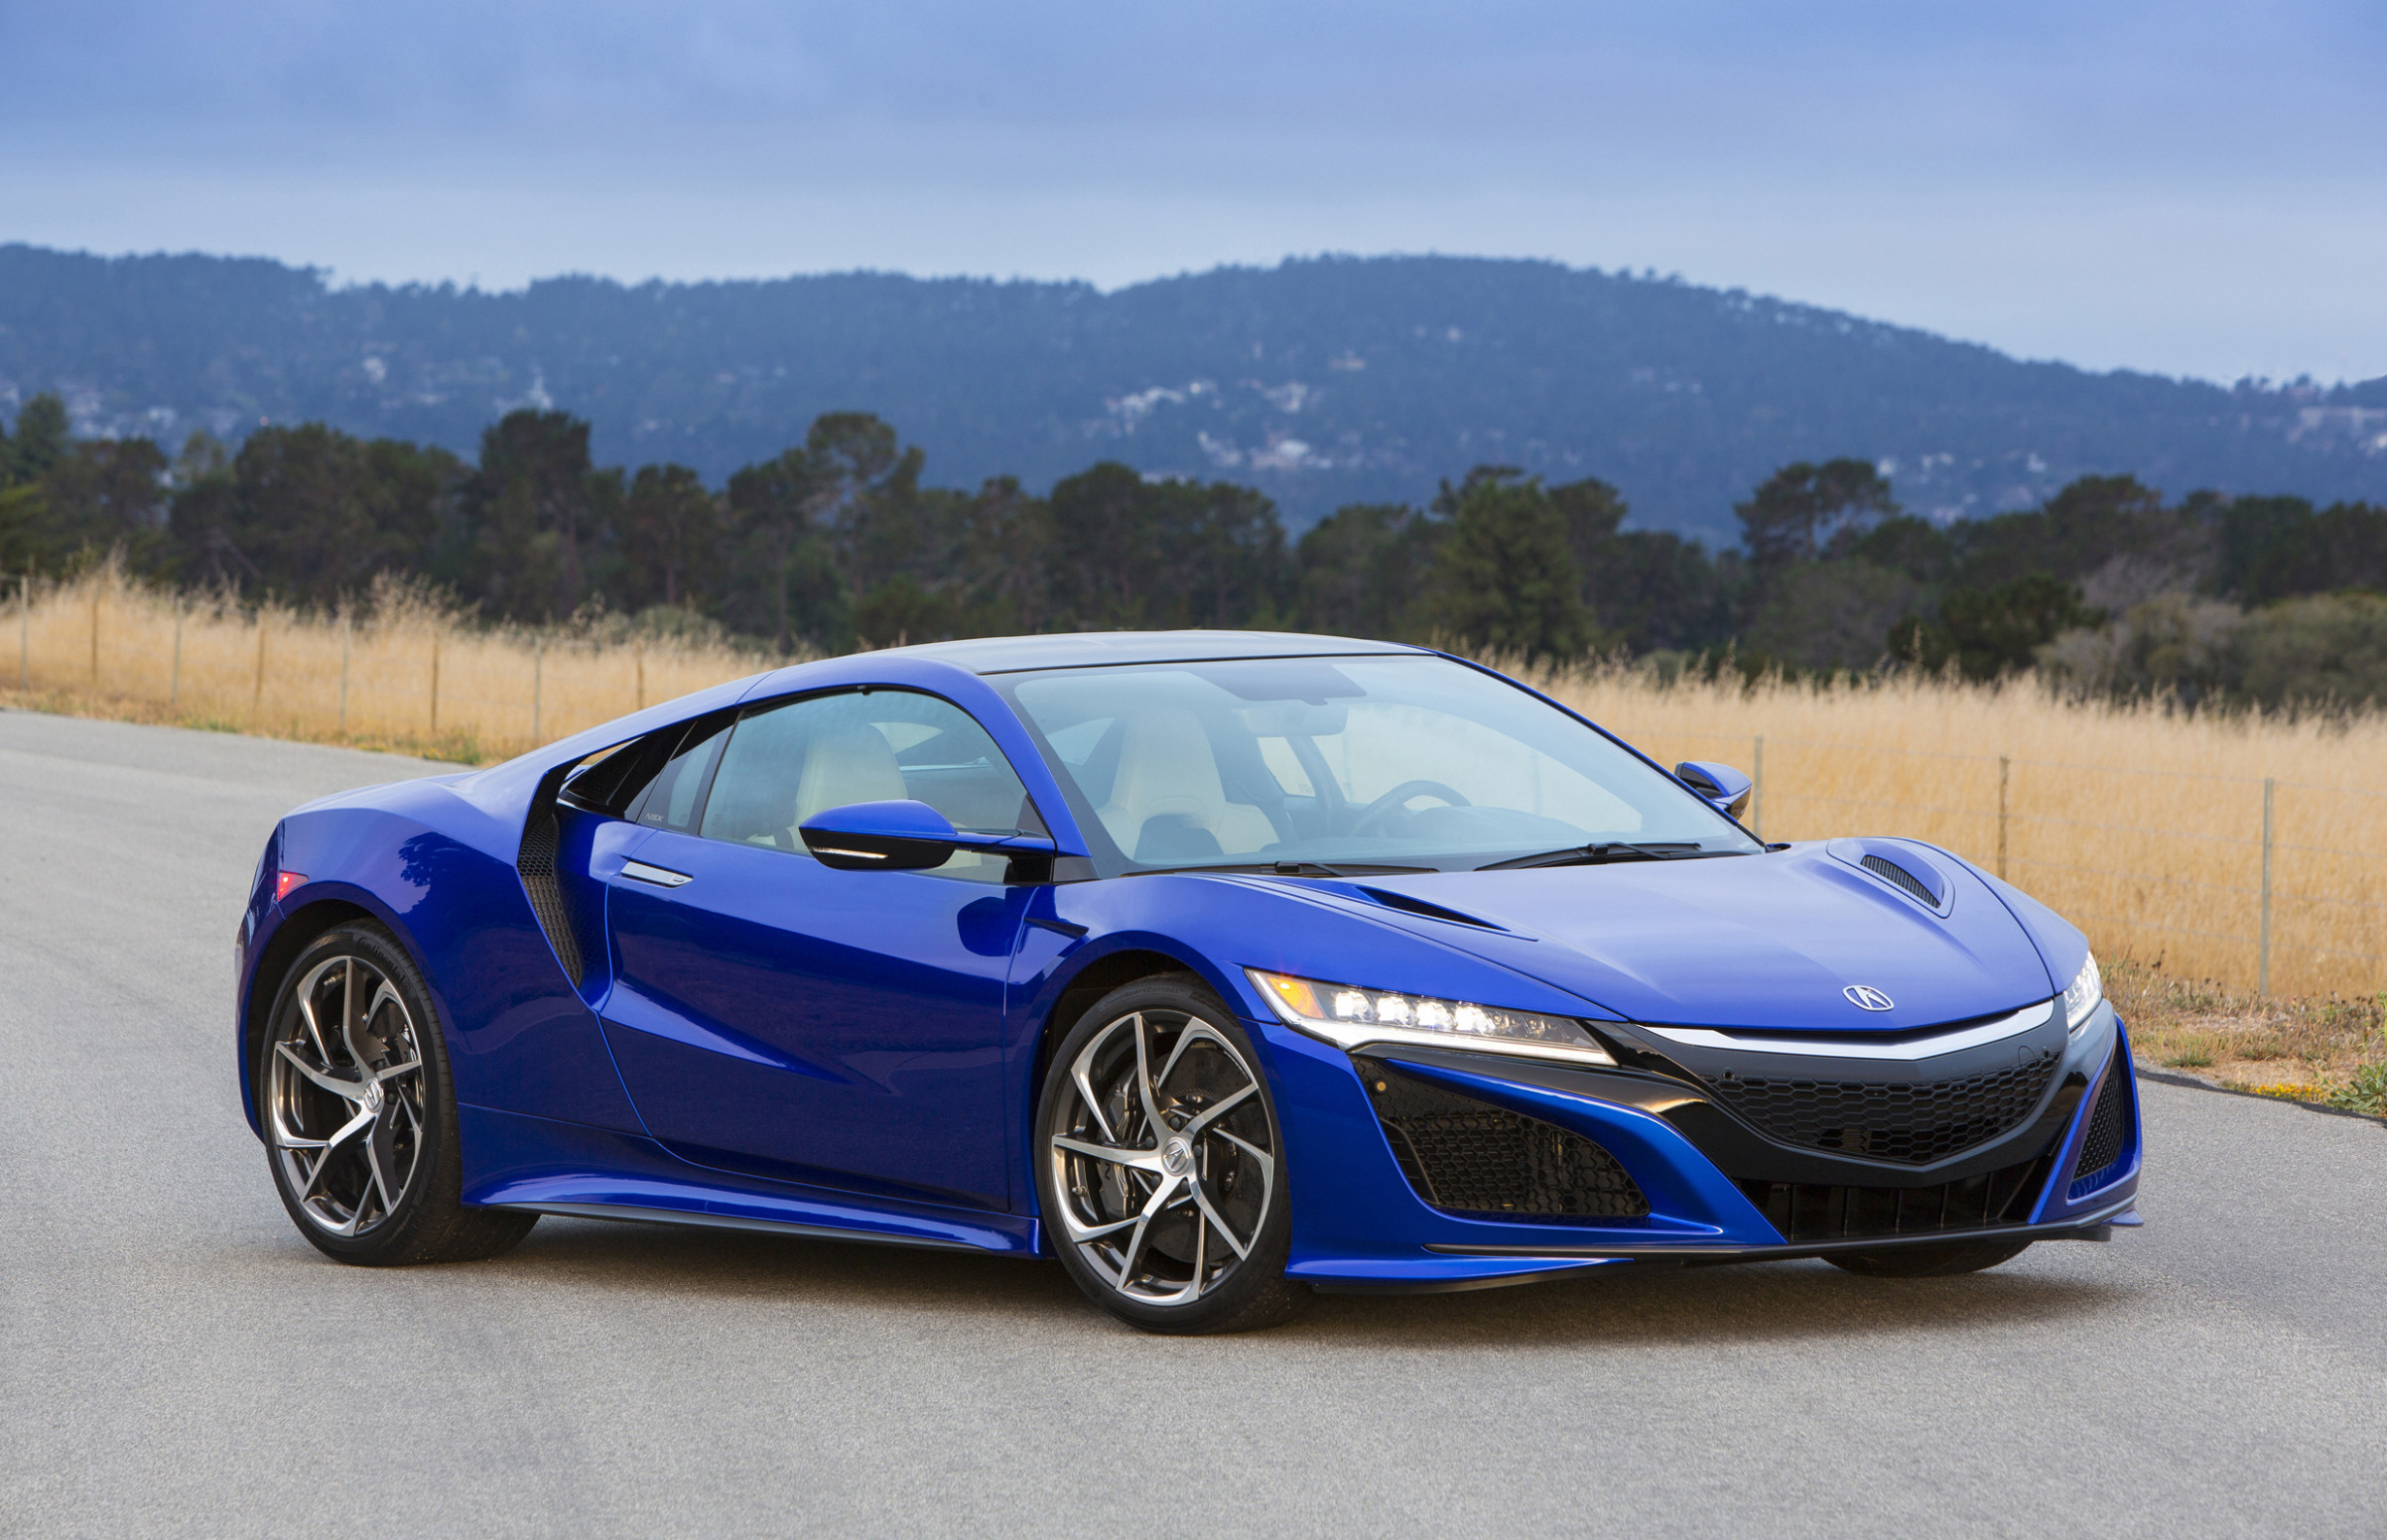 Acura NSX 8 - View Specs, Prices, Photos & More | Driving - acura price 2020